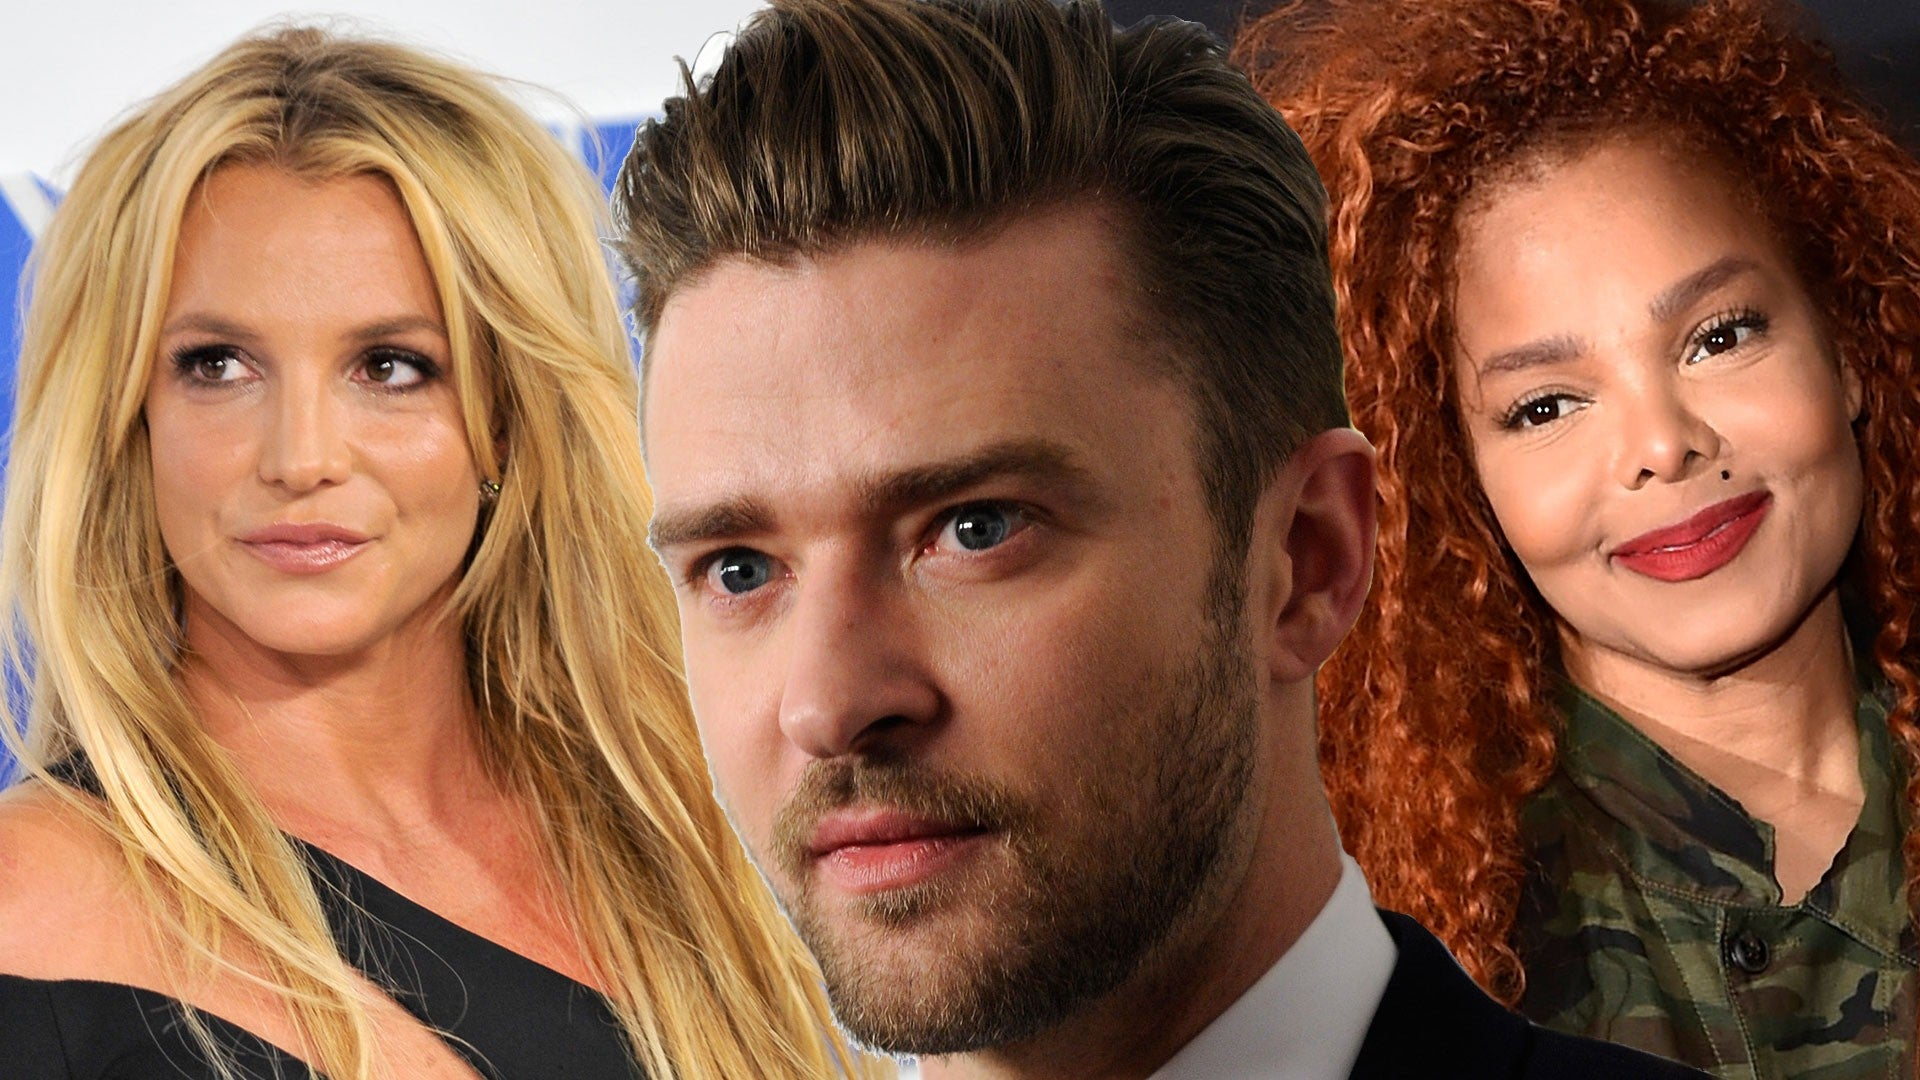 justin-timberlake-apologizes-to-britney-spears-and-janet-jackson-after-facing-backlash-is-it-too-late